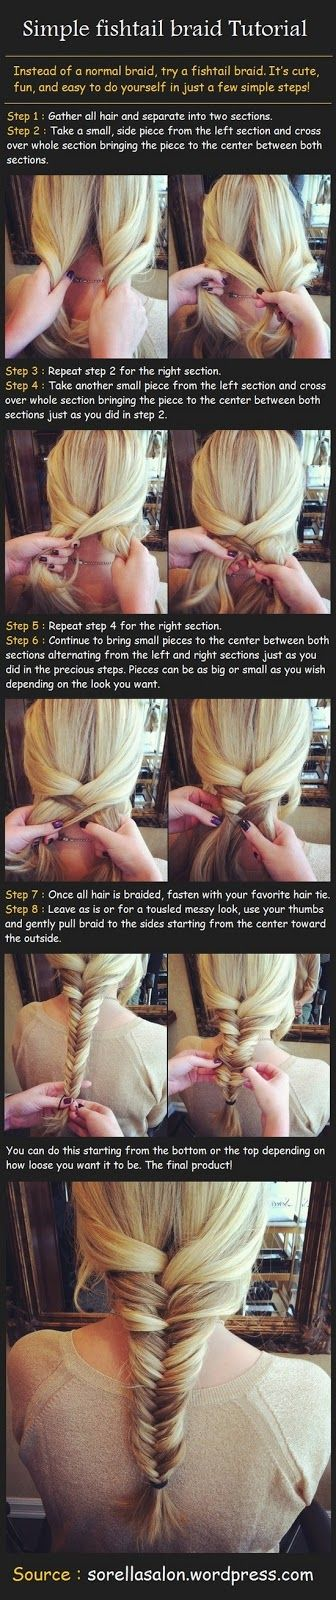 Learn simple fishtail hair style for ladies:-  For making simple fishtail hair style, first of all gather all hairs and... click on picture to read more